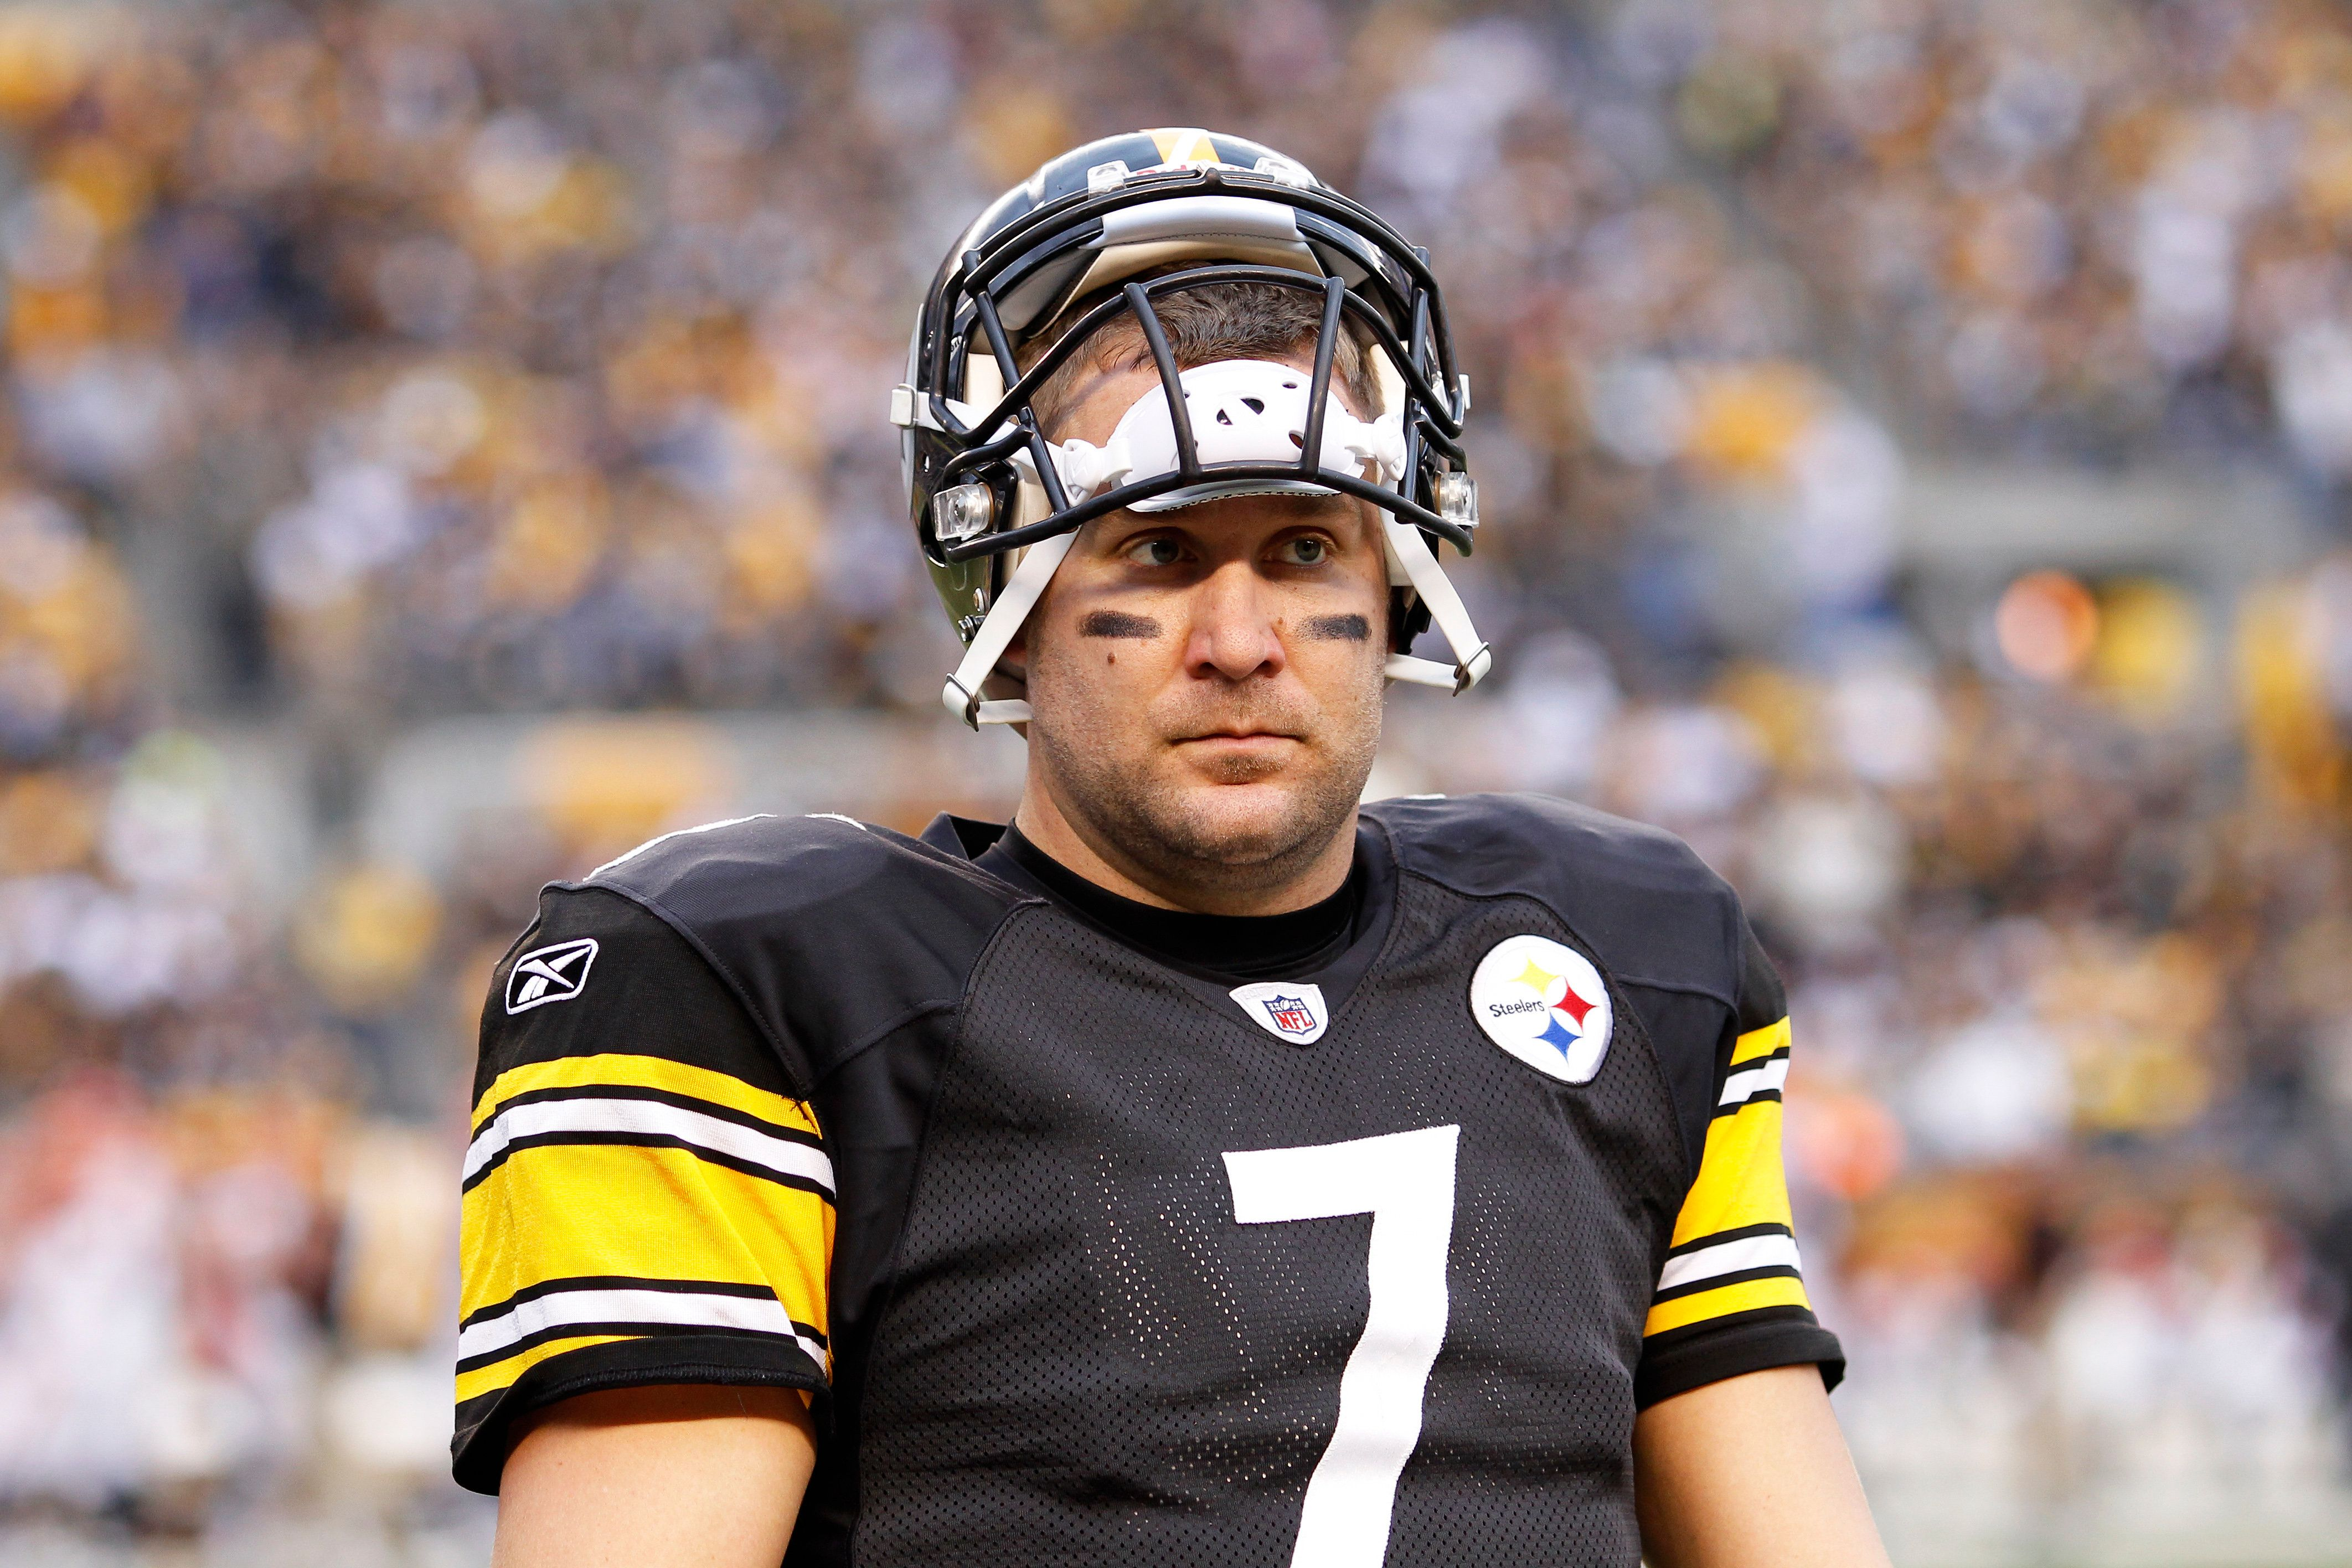 PITTSBURGH, PA - DECEMBER 4: Ben Roethlisberger #7 of the Pittsburgh Steelers during the game against the Cincinnati Bengals at Heinz Field on December 4, 2011 in Pittsburgh, Pennsylvania. The Steelers defeated the Bengals 35-7. (Photo by Joe Robbins/Getty Images)